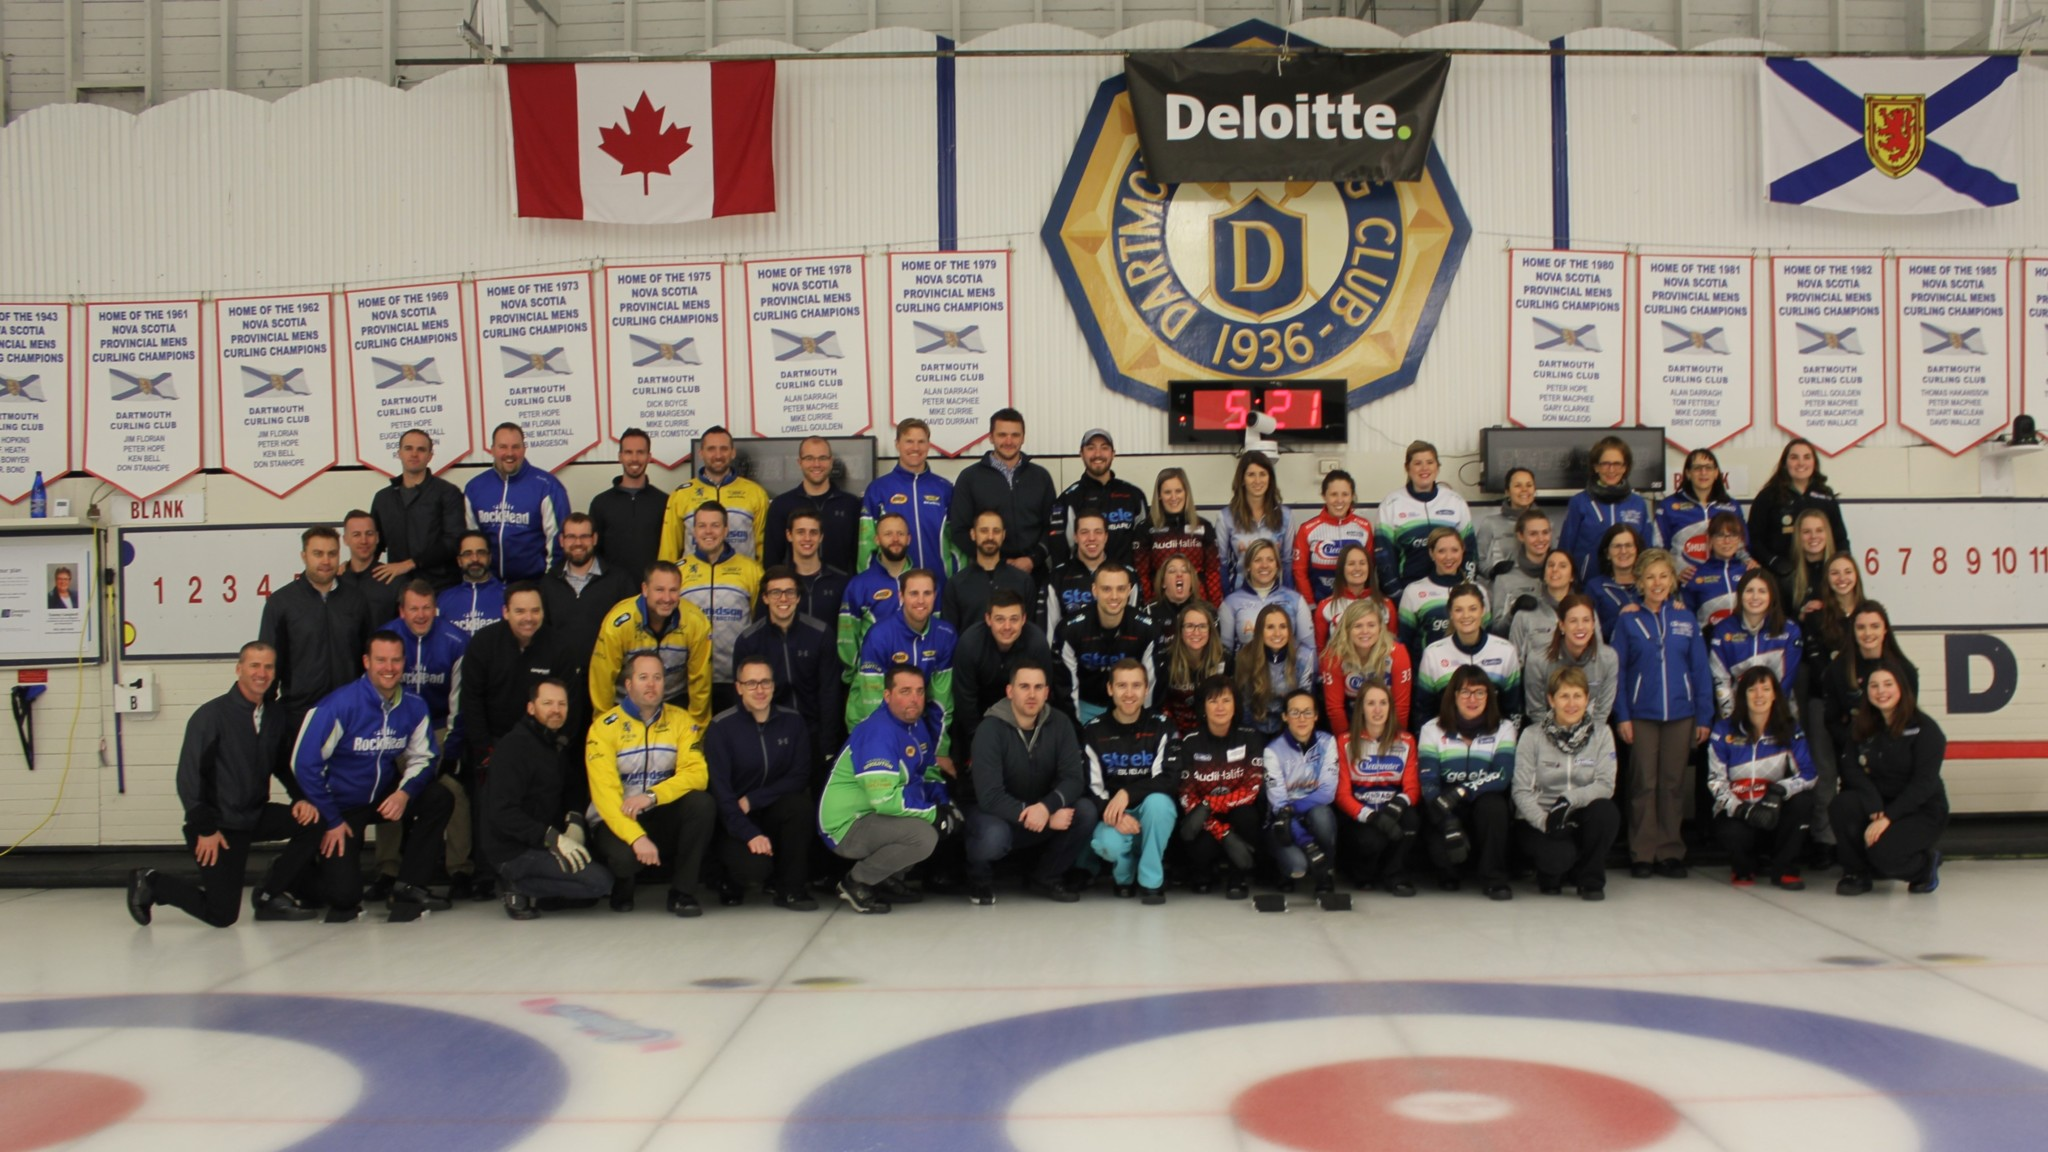 2018 Scotties Deloitte Tankard Participants